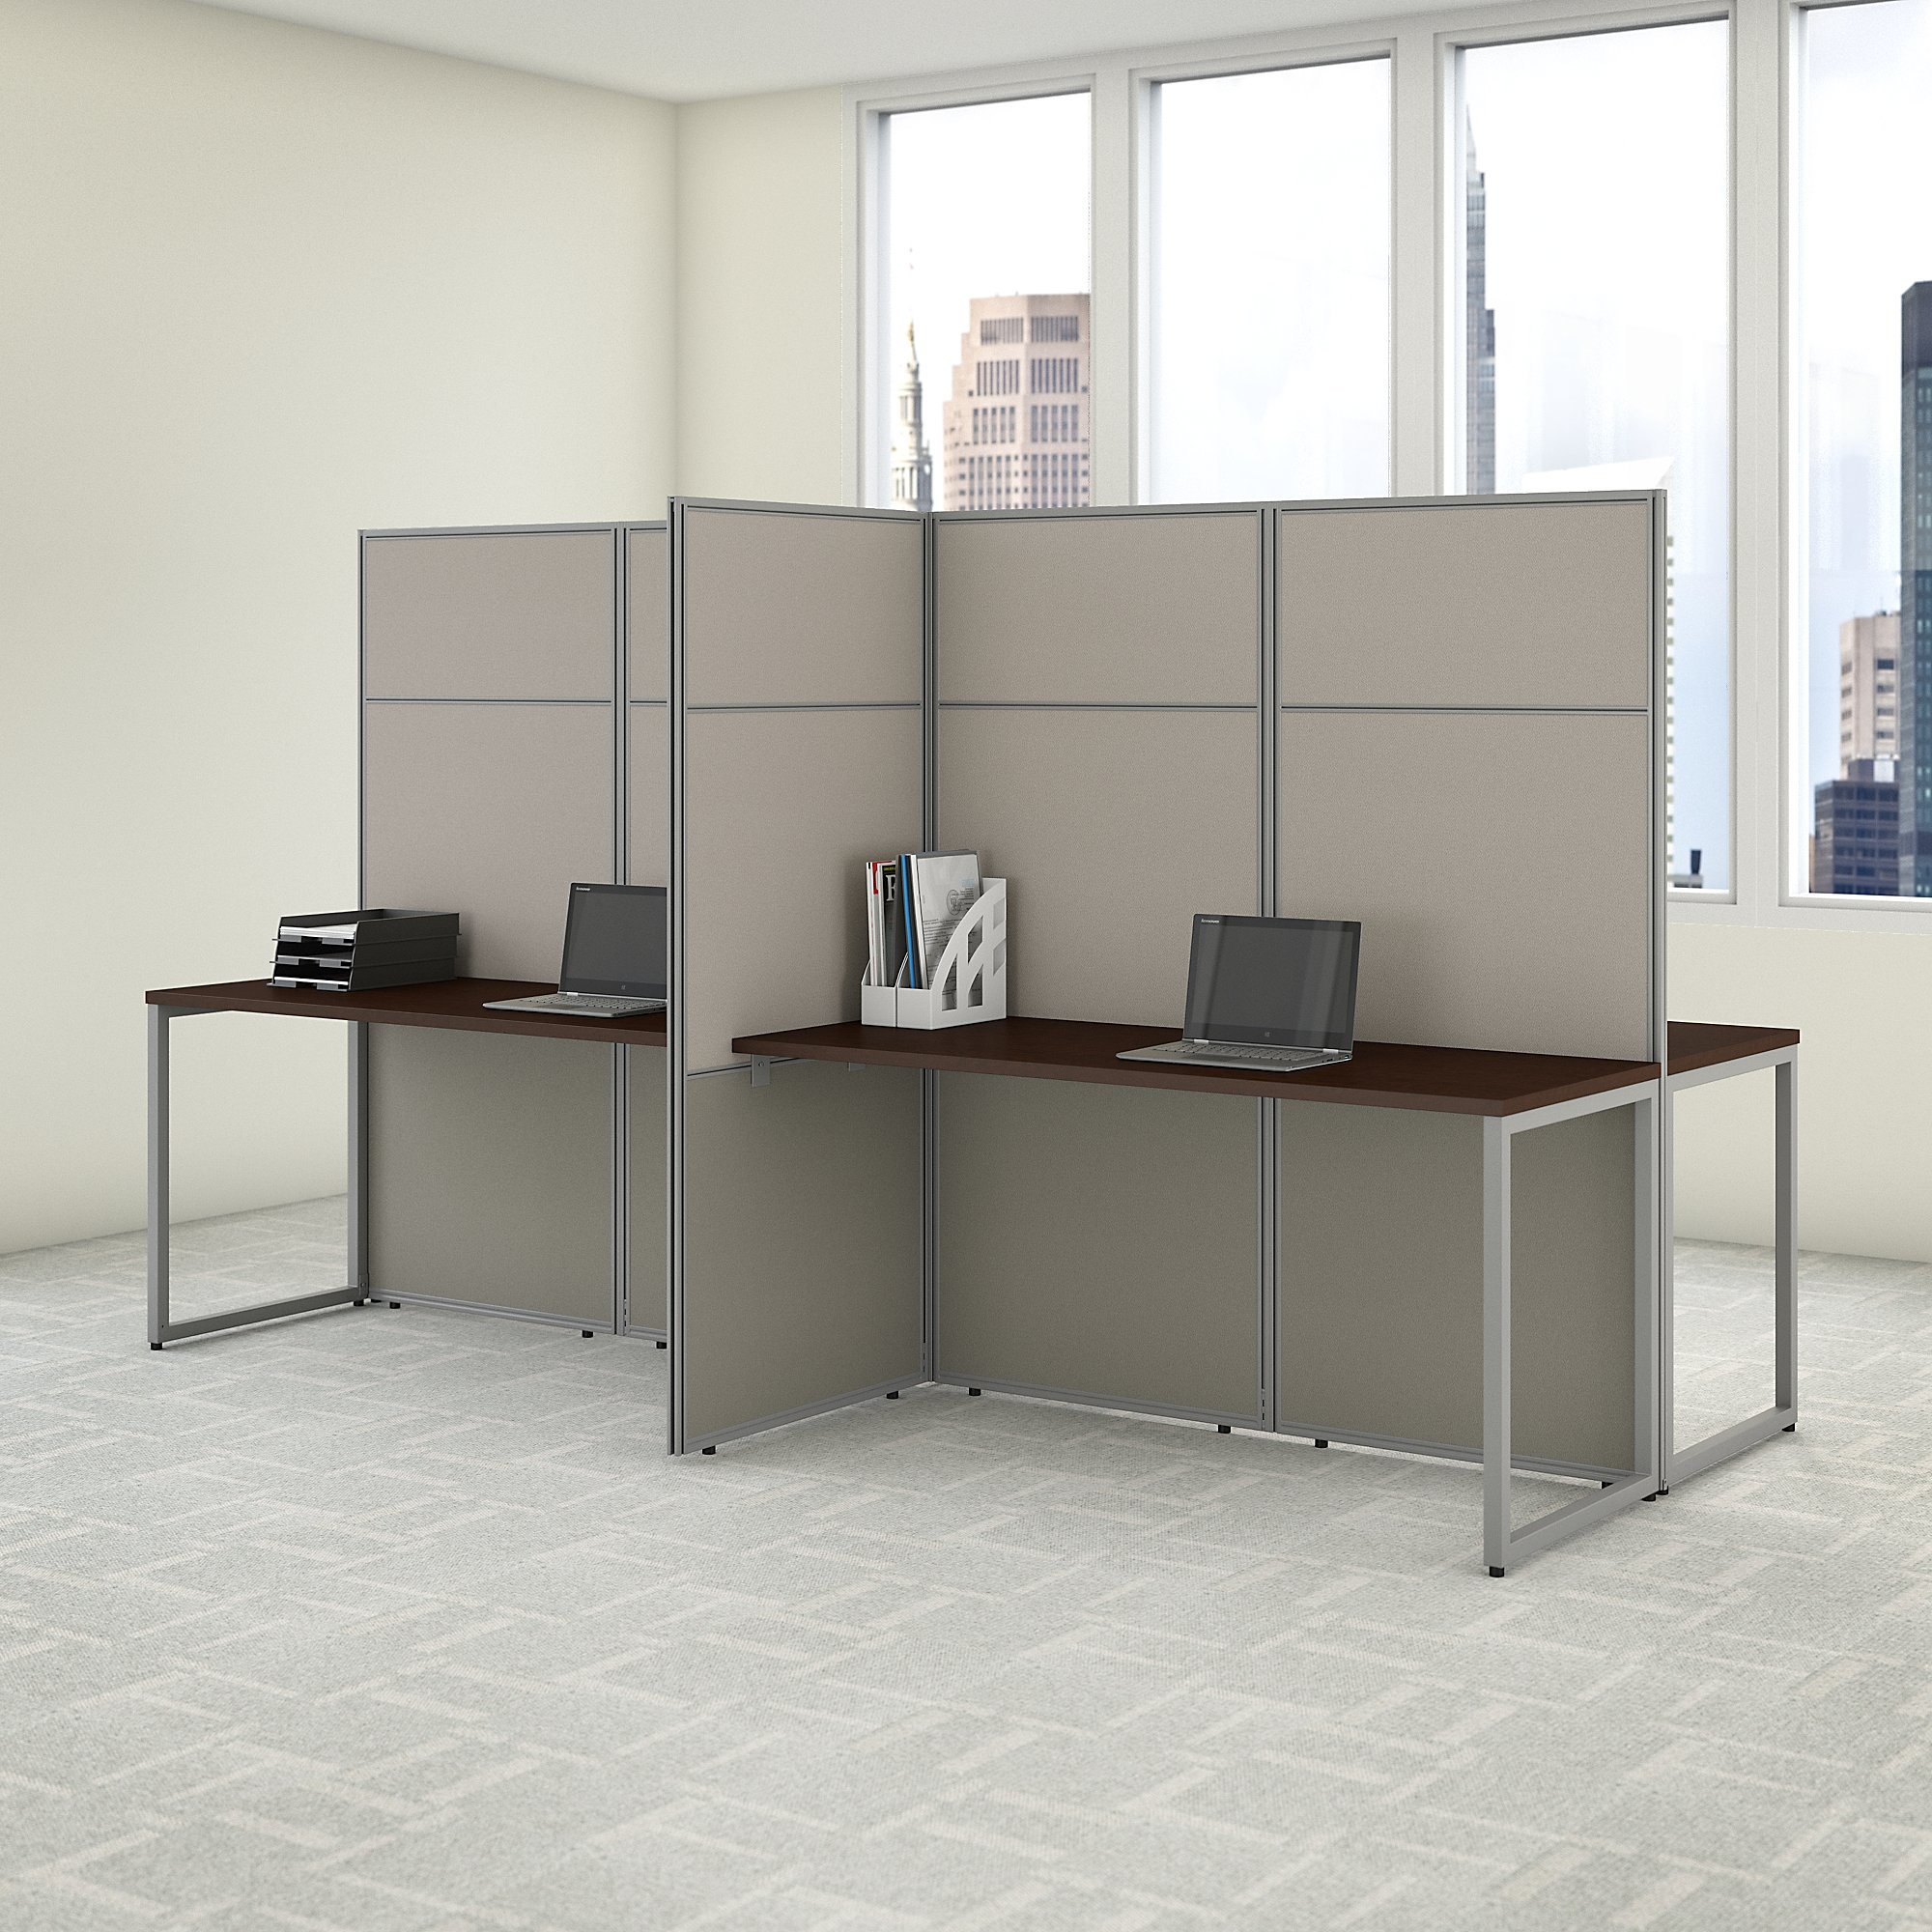 easy office 4 person privacy workstation in mocha cherry